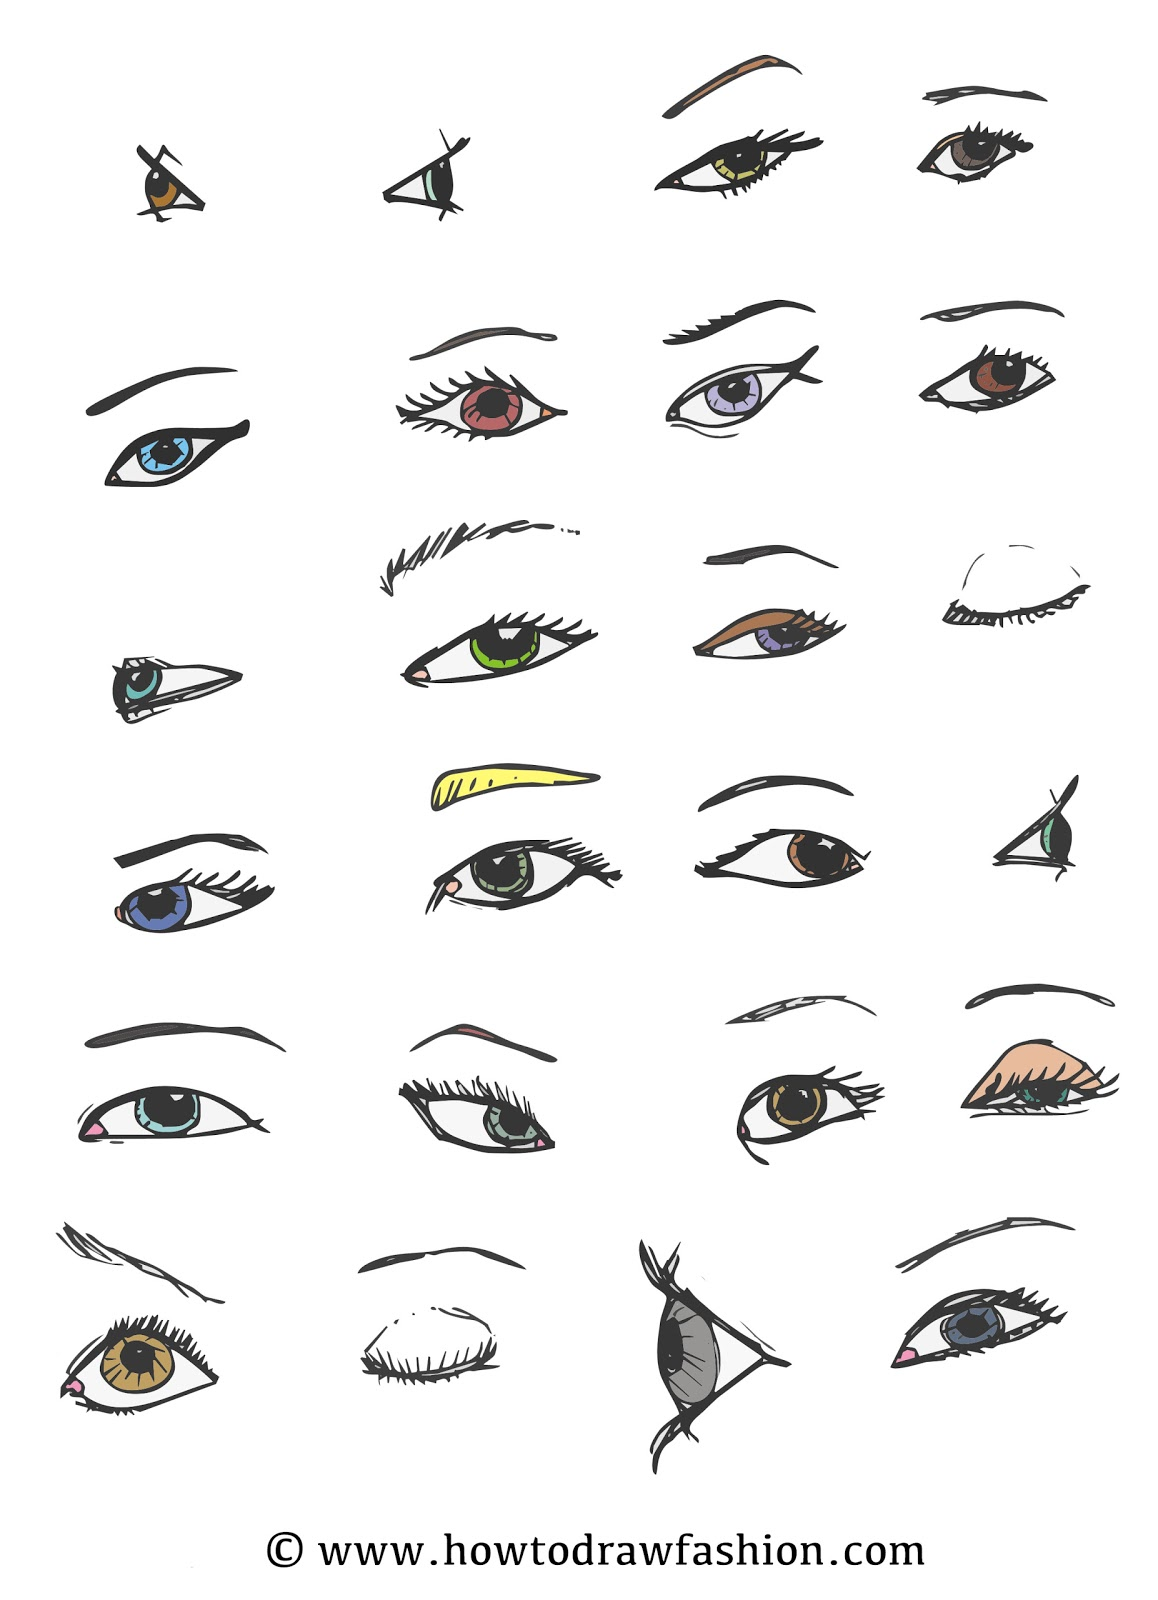 How to draw faces in fashion illustration